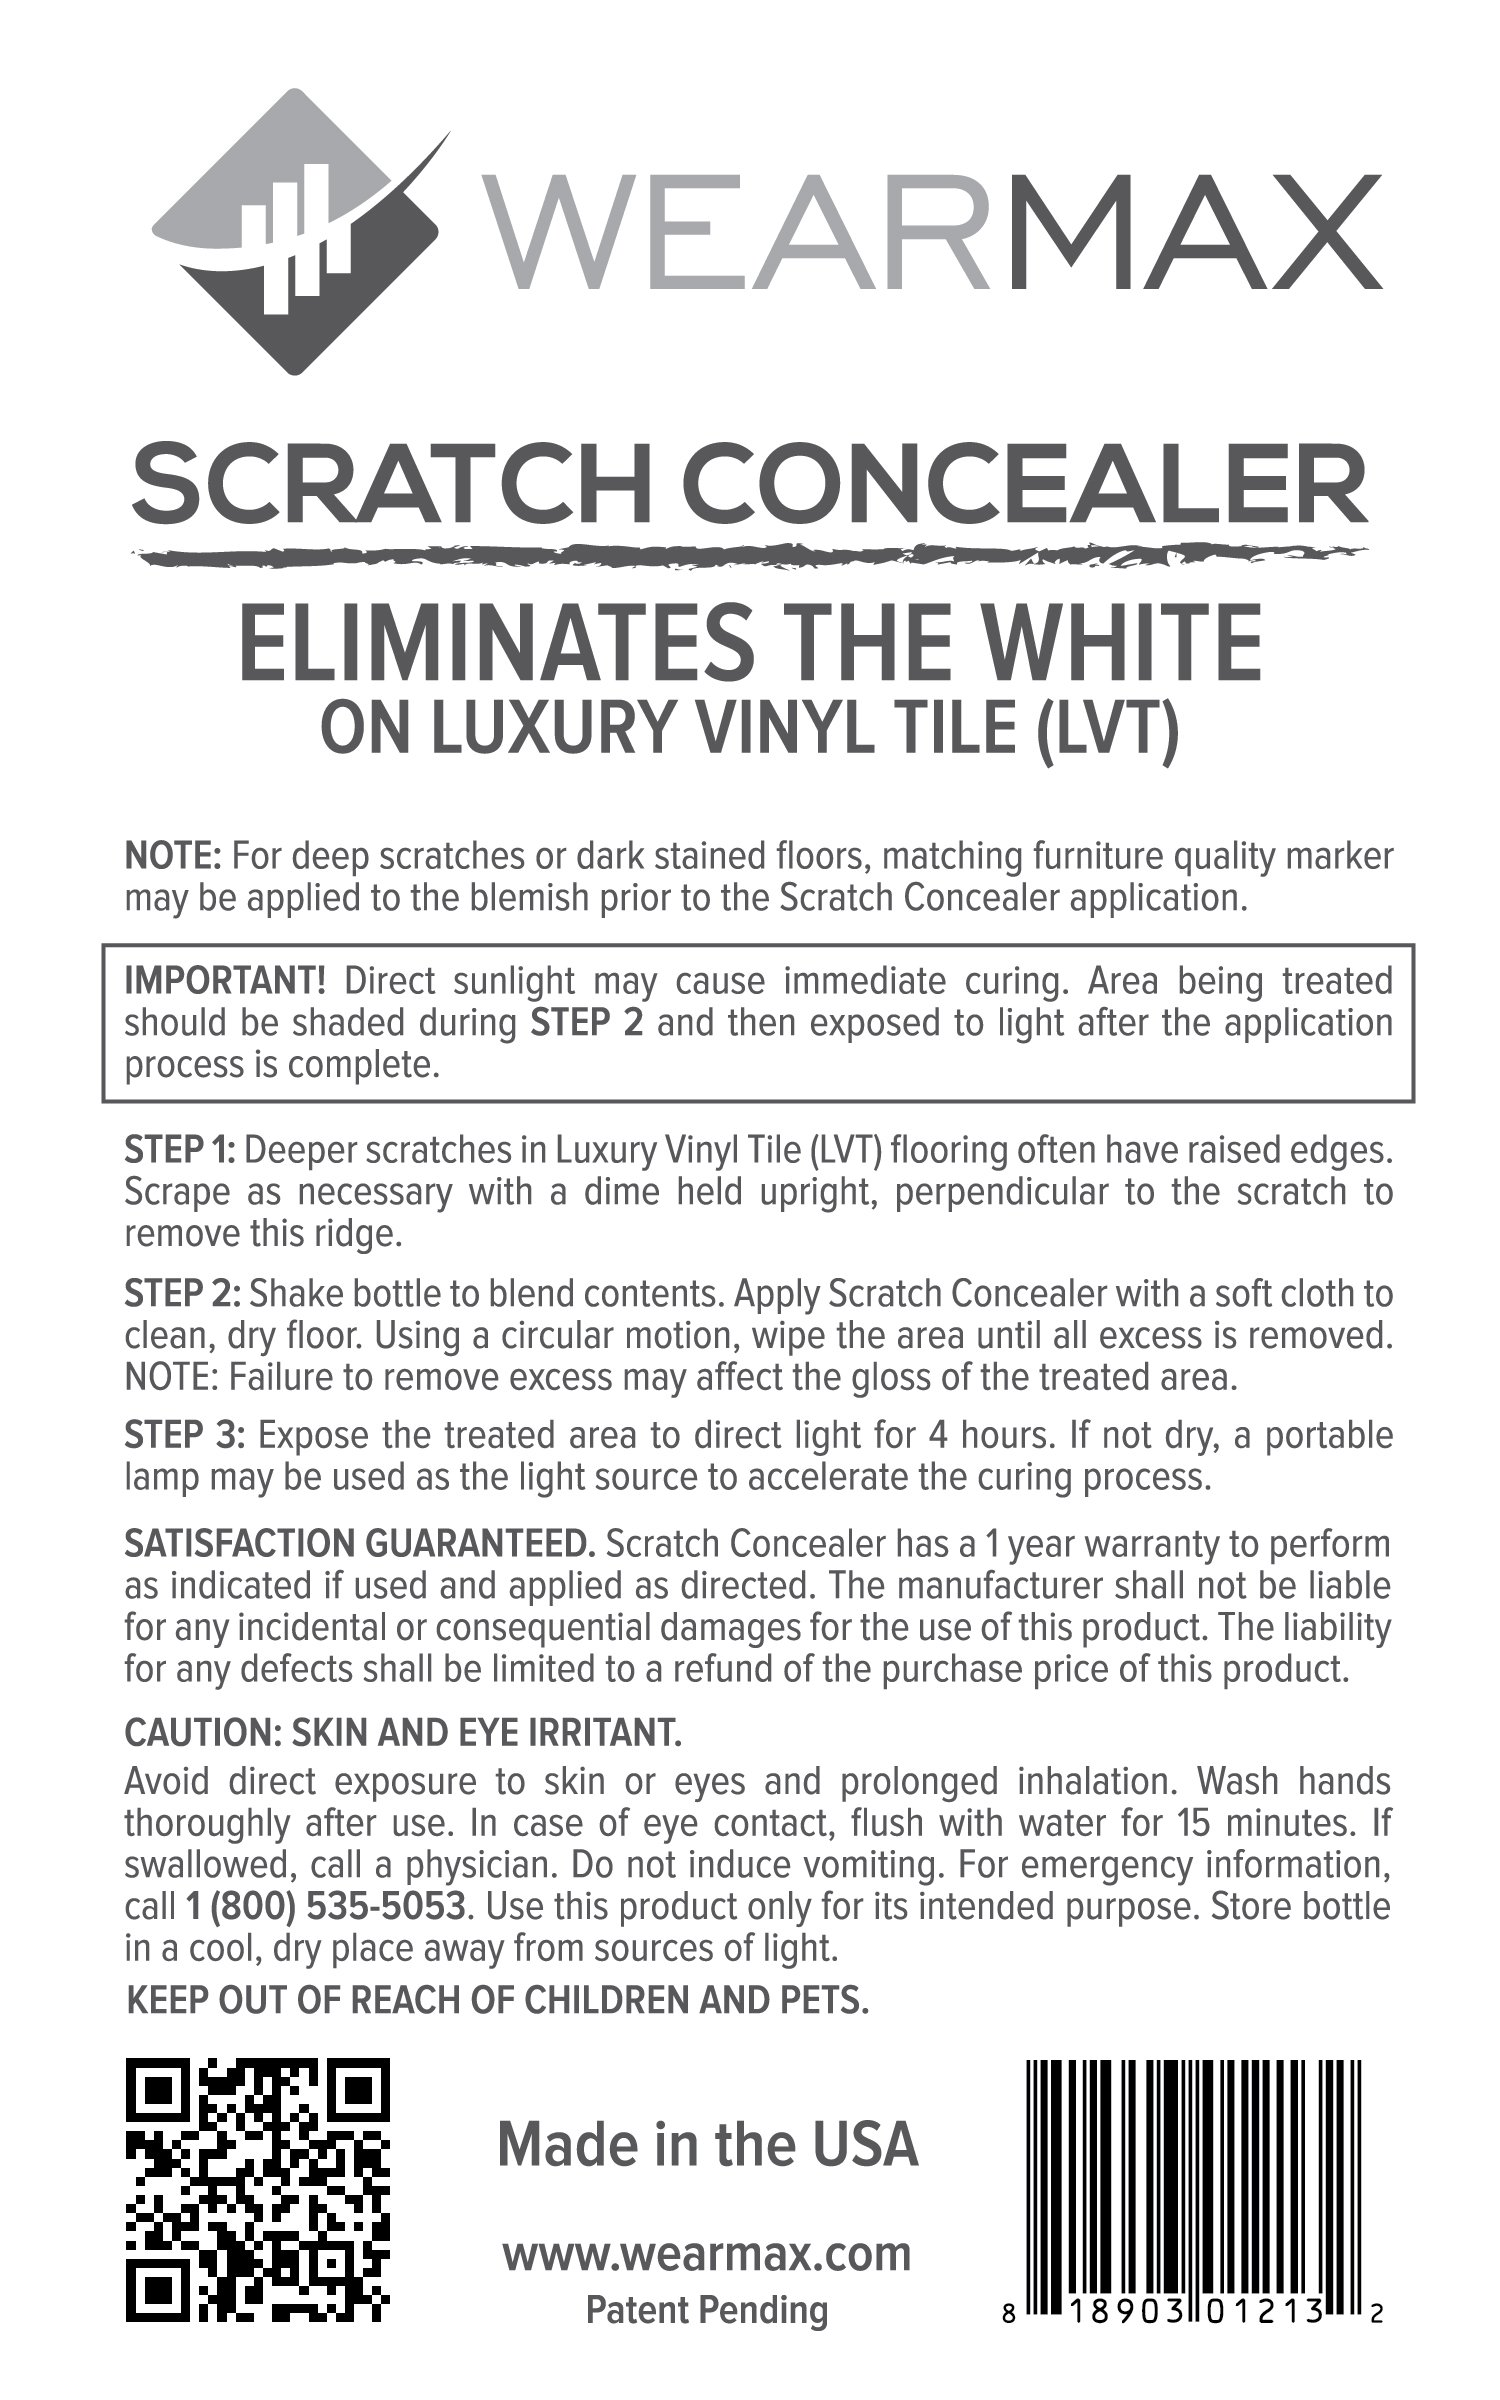 WearMax Scratch Concealer for Luxury Vinyl Tile (LVT) Flooring - Scratch Repair Touch-up & Remover - Eliminate White Lines from LVT Floors by WearMax (Image #1)